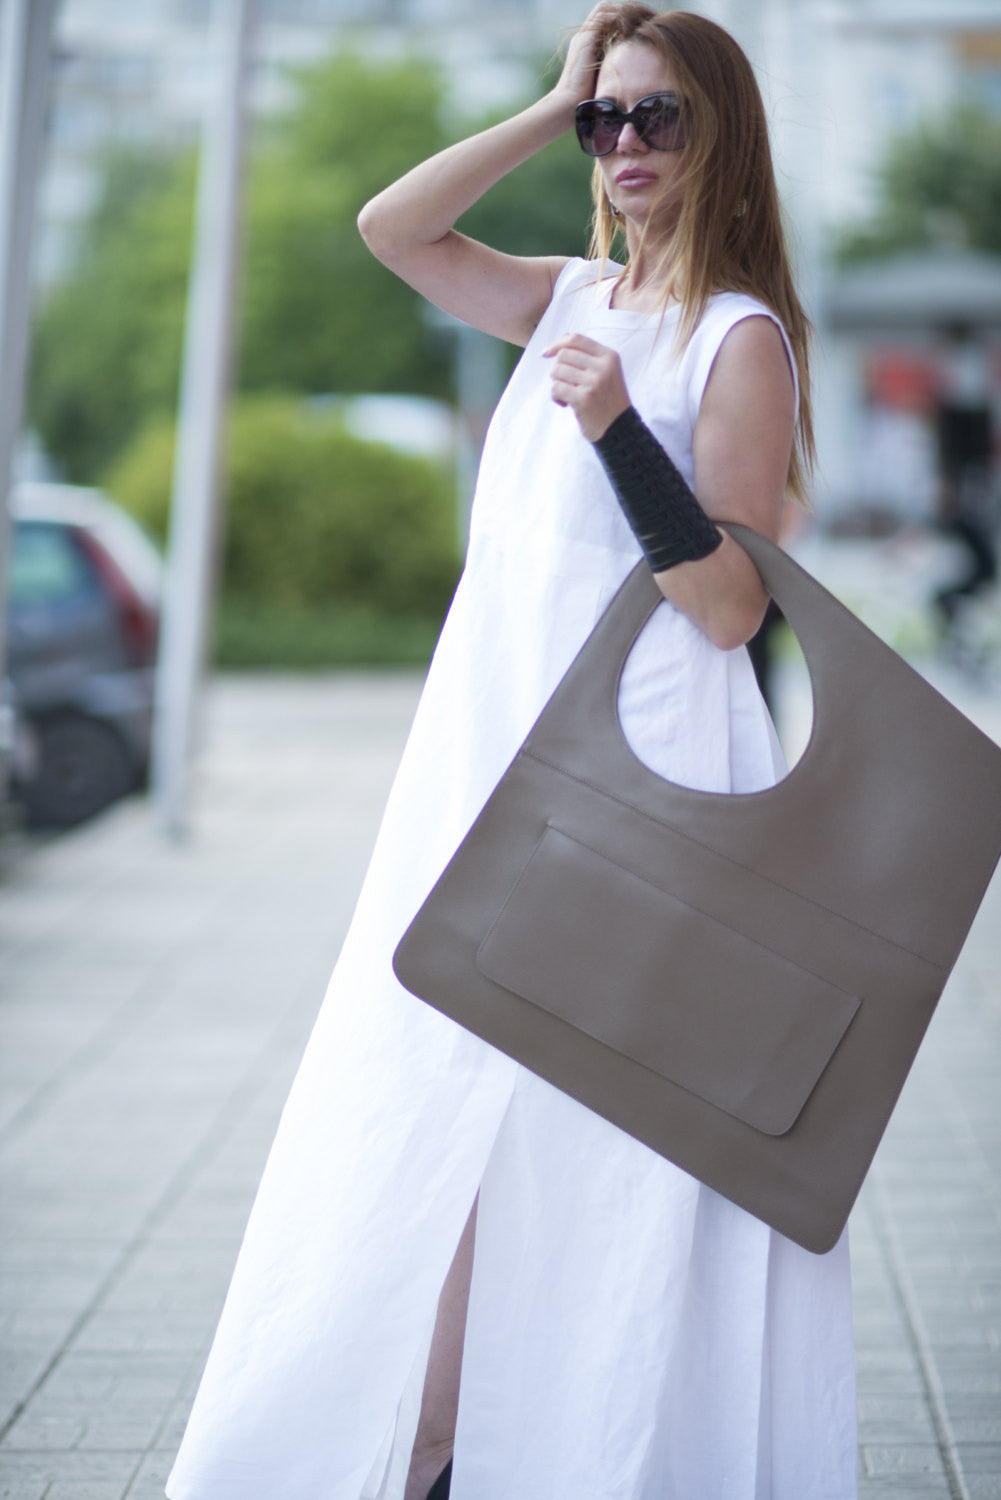 Tobacco Brown Leather Tote Bag, leather shoulder bag, Bags & Accessories